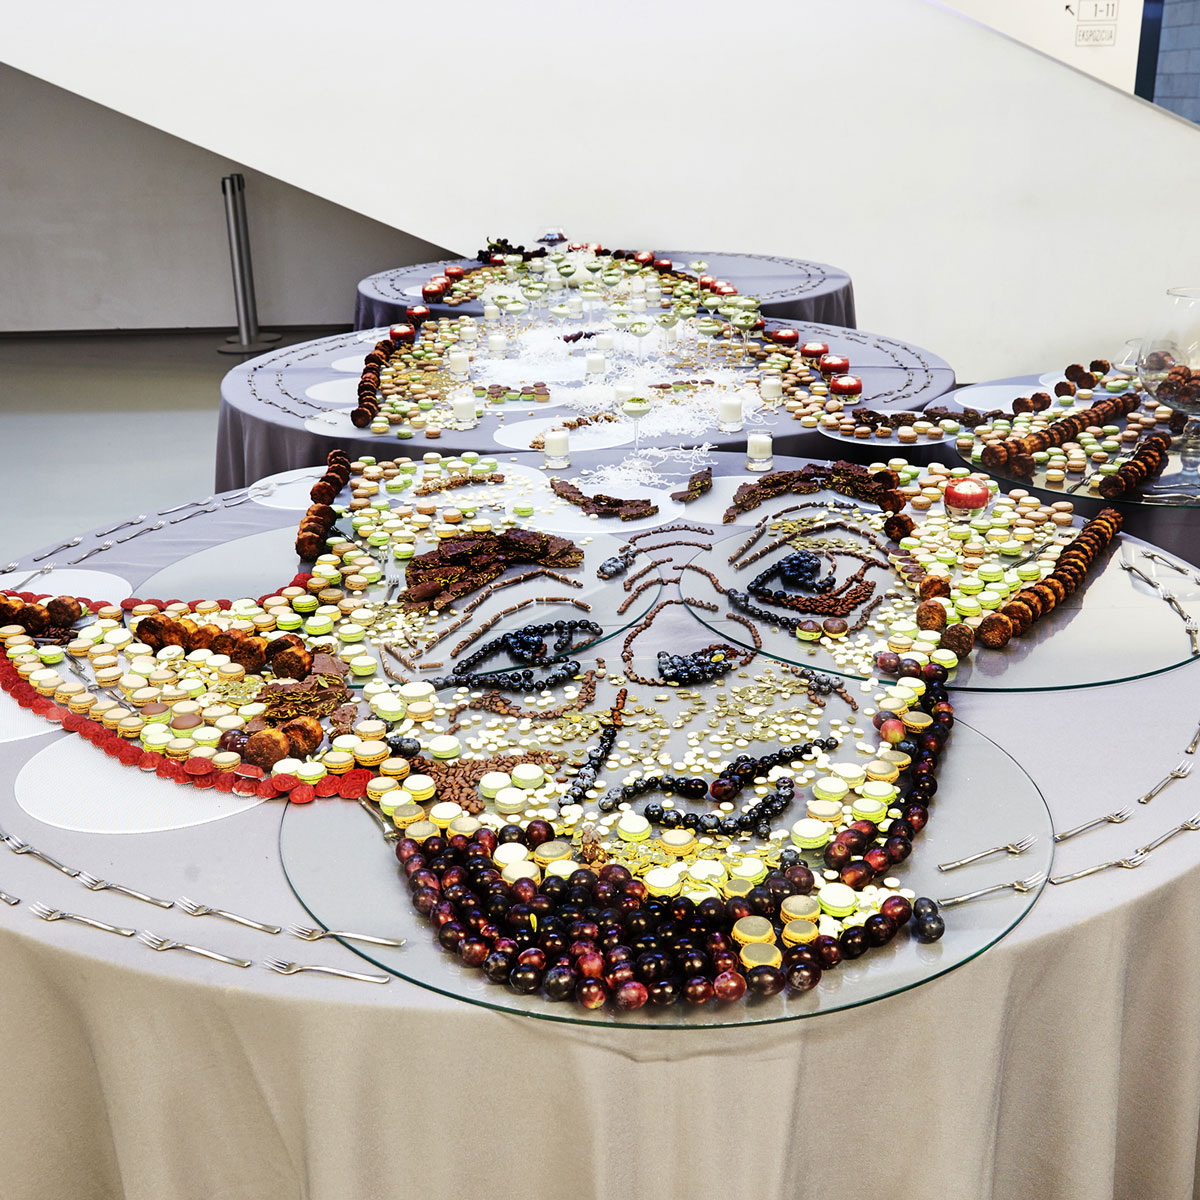 Cooking With Champagne This Yoda Food Art Will Totally Mess With Your Eyes Food